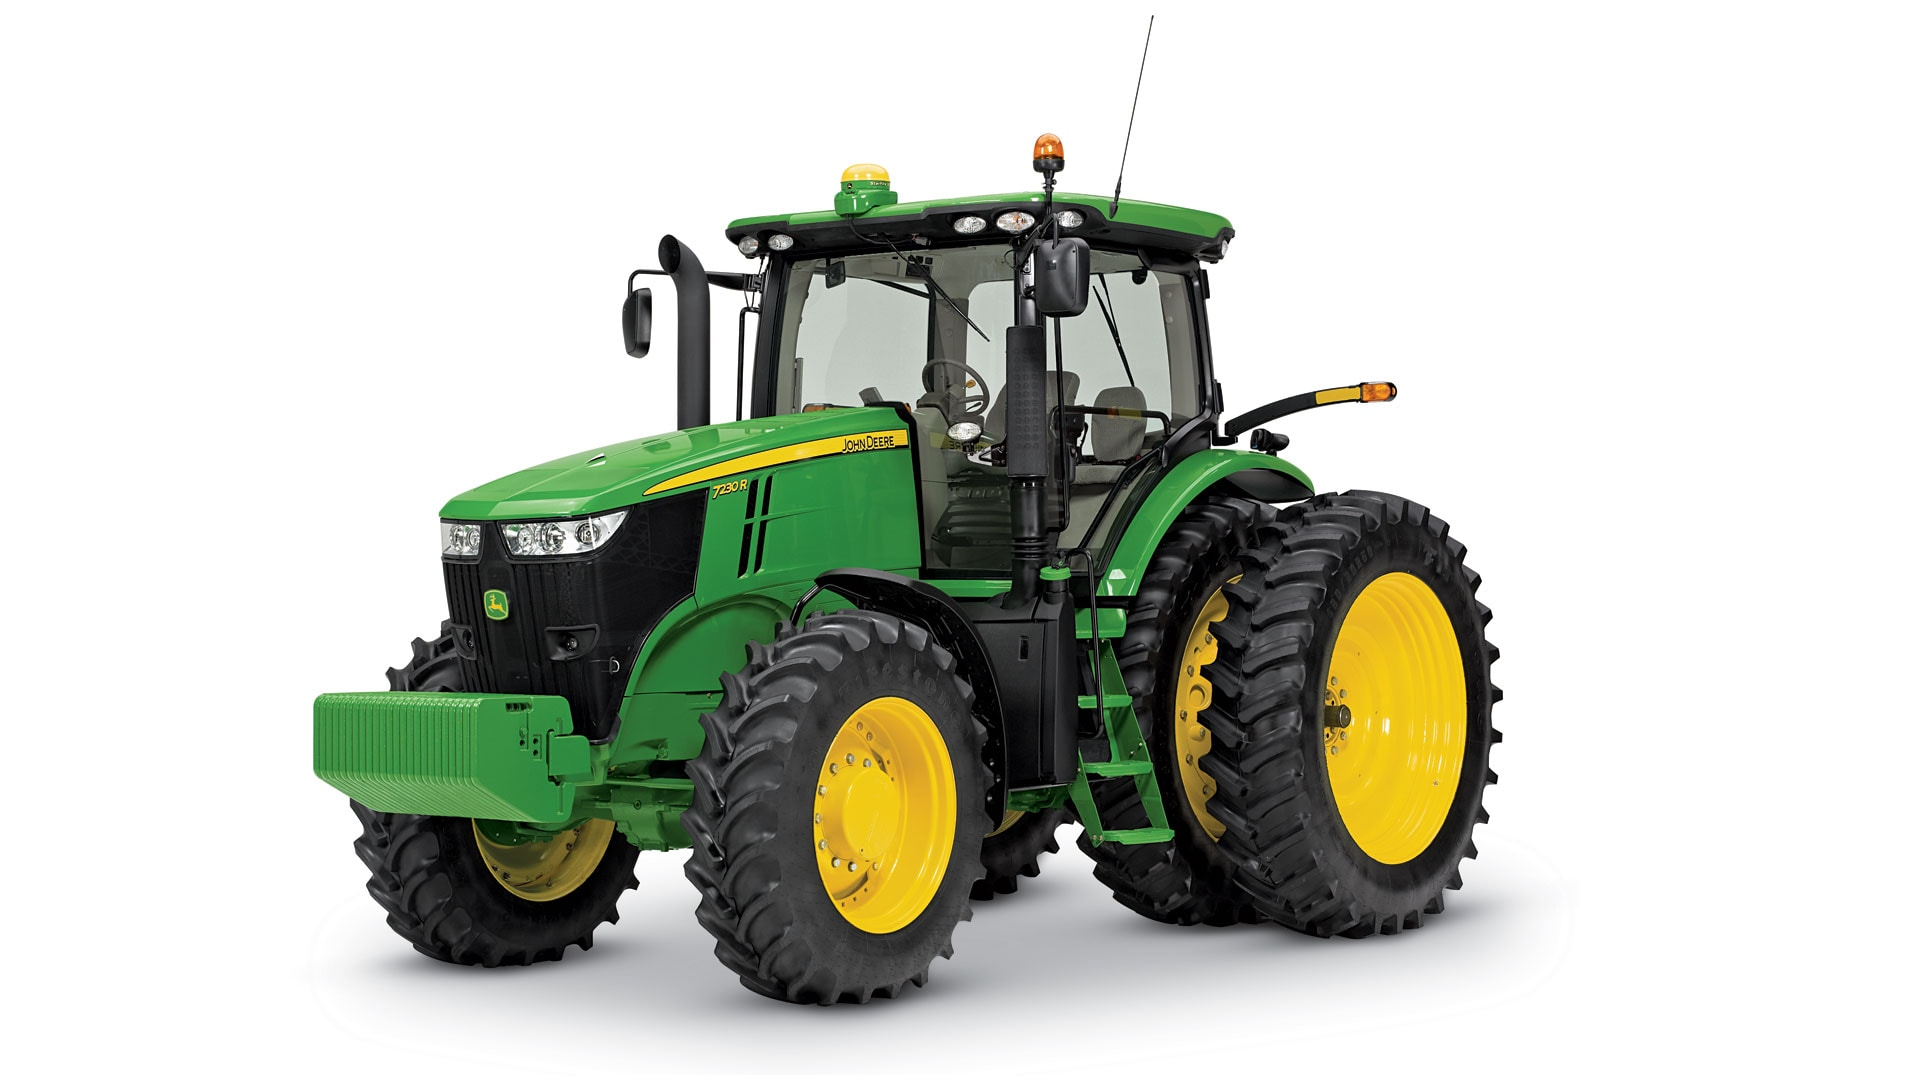 View the 7R Series Tractors